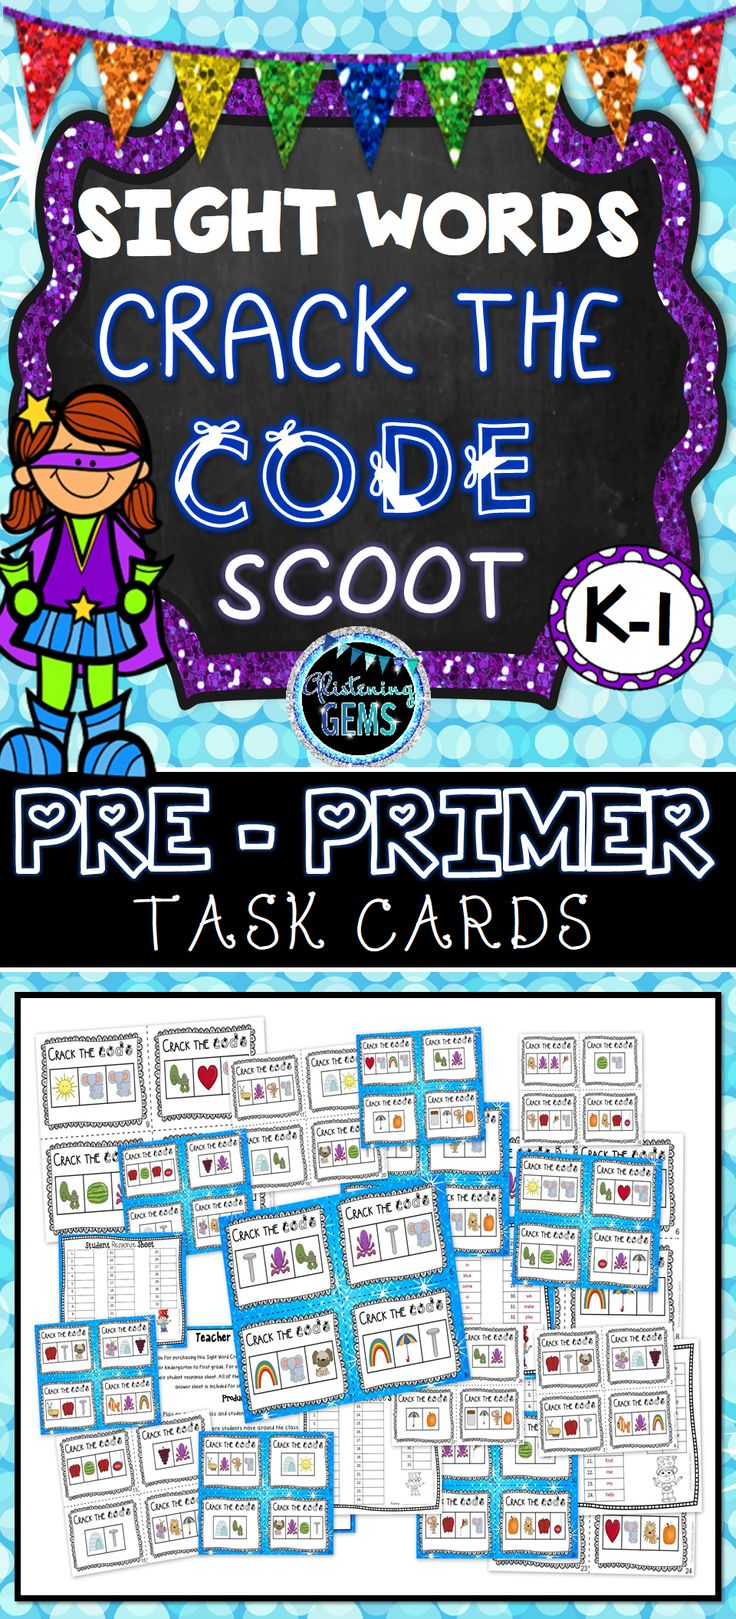 Pre-Primer Sight Word Task Cards {Scoot} - Crack the Code - K-1